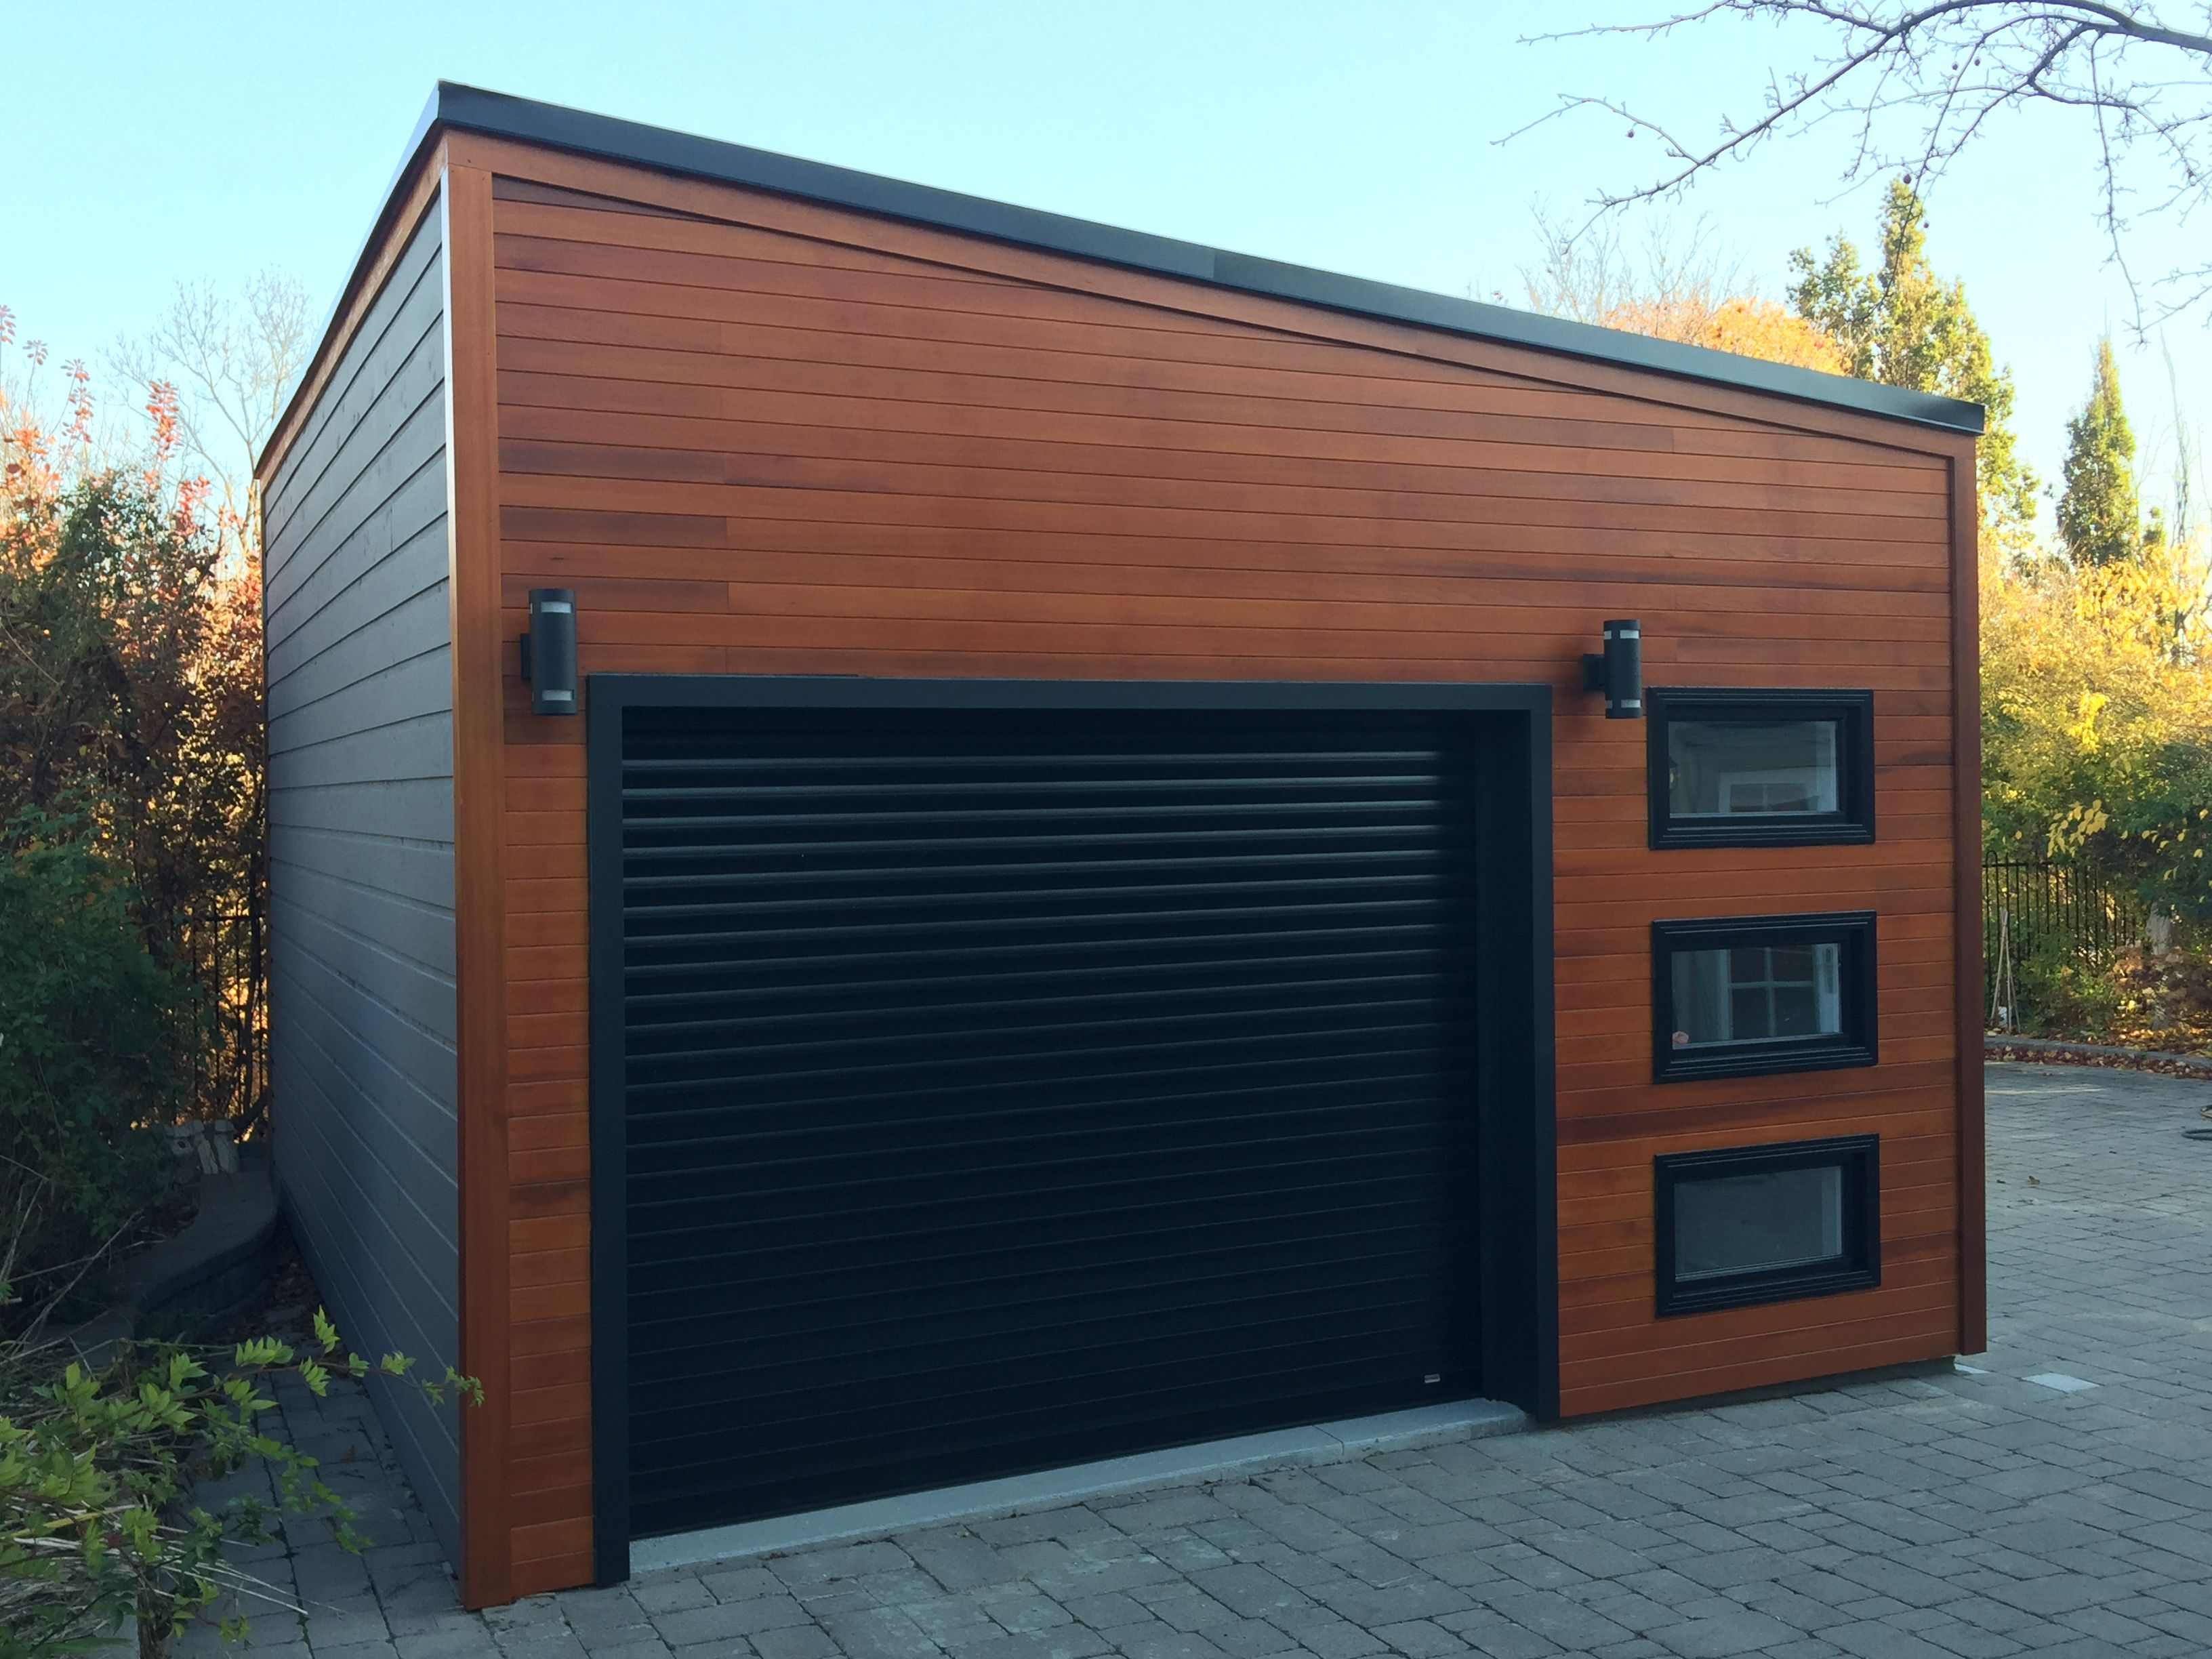 What A Stunning Urban Garage The Black Door And Window Accents Are A Perfect Match For The Beautiful Clear Ced Garage Design Building A Garage Backyard Garage